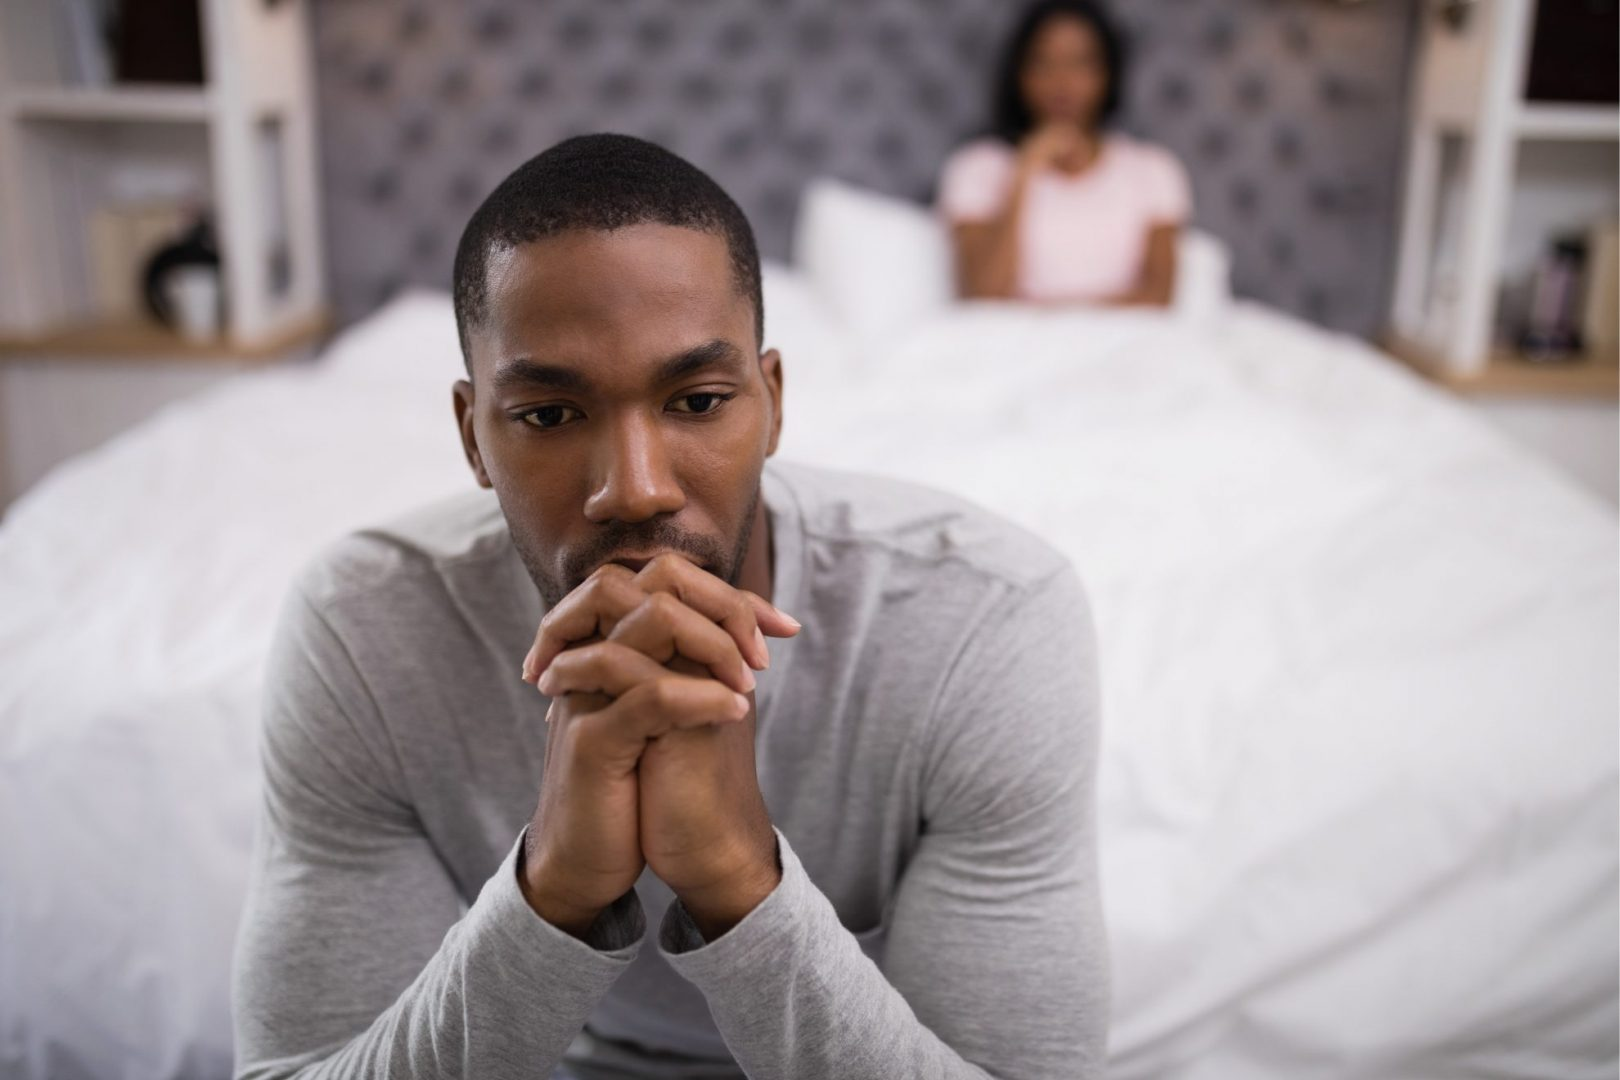 man experiencing sexual issues with his wife